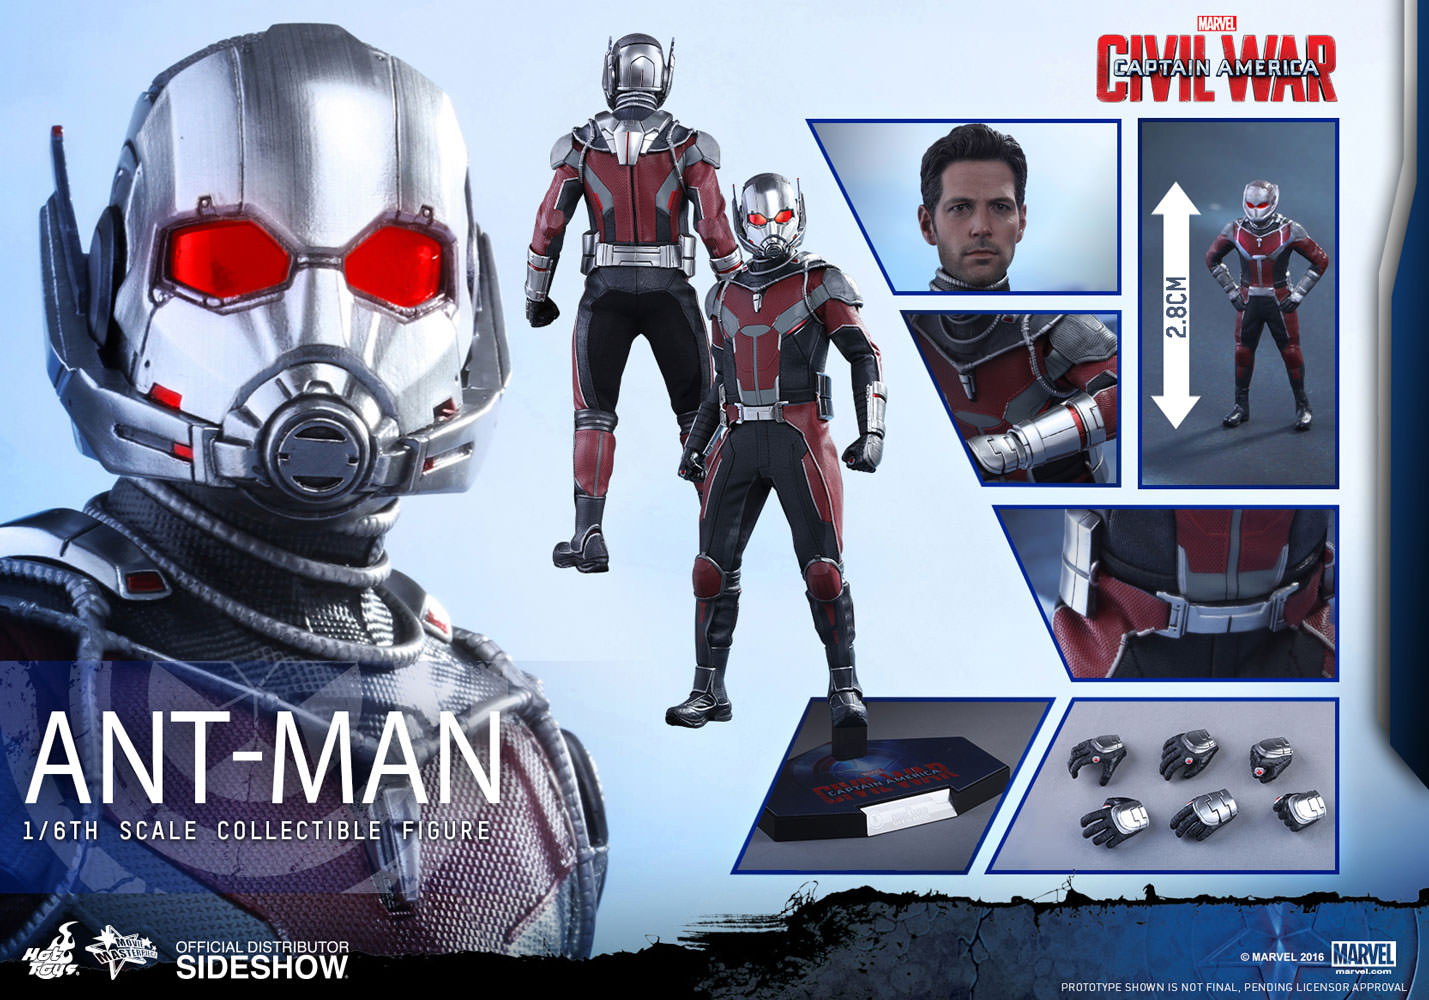 Ant-Man Hot Toys Captain America: Civil War - Movie Masterpiece Series  mms362 1/6